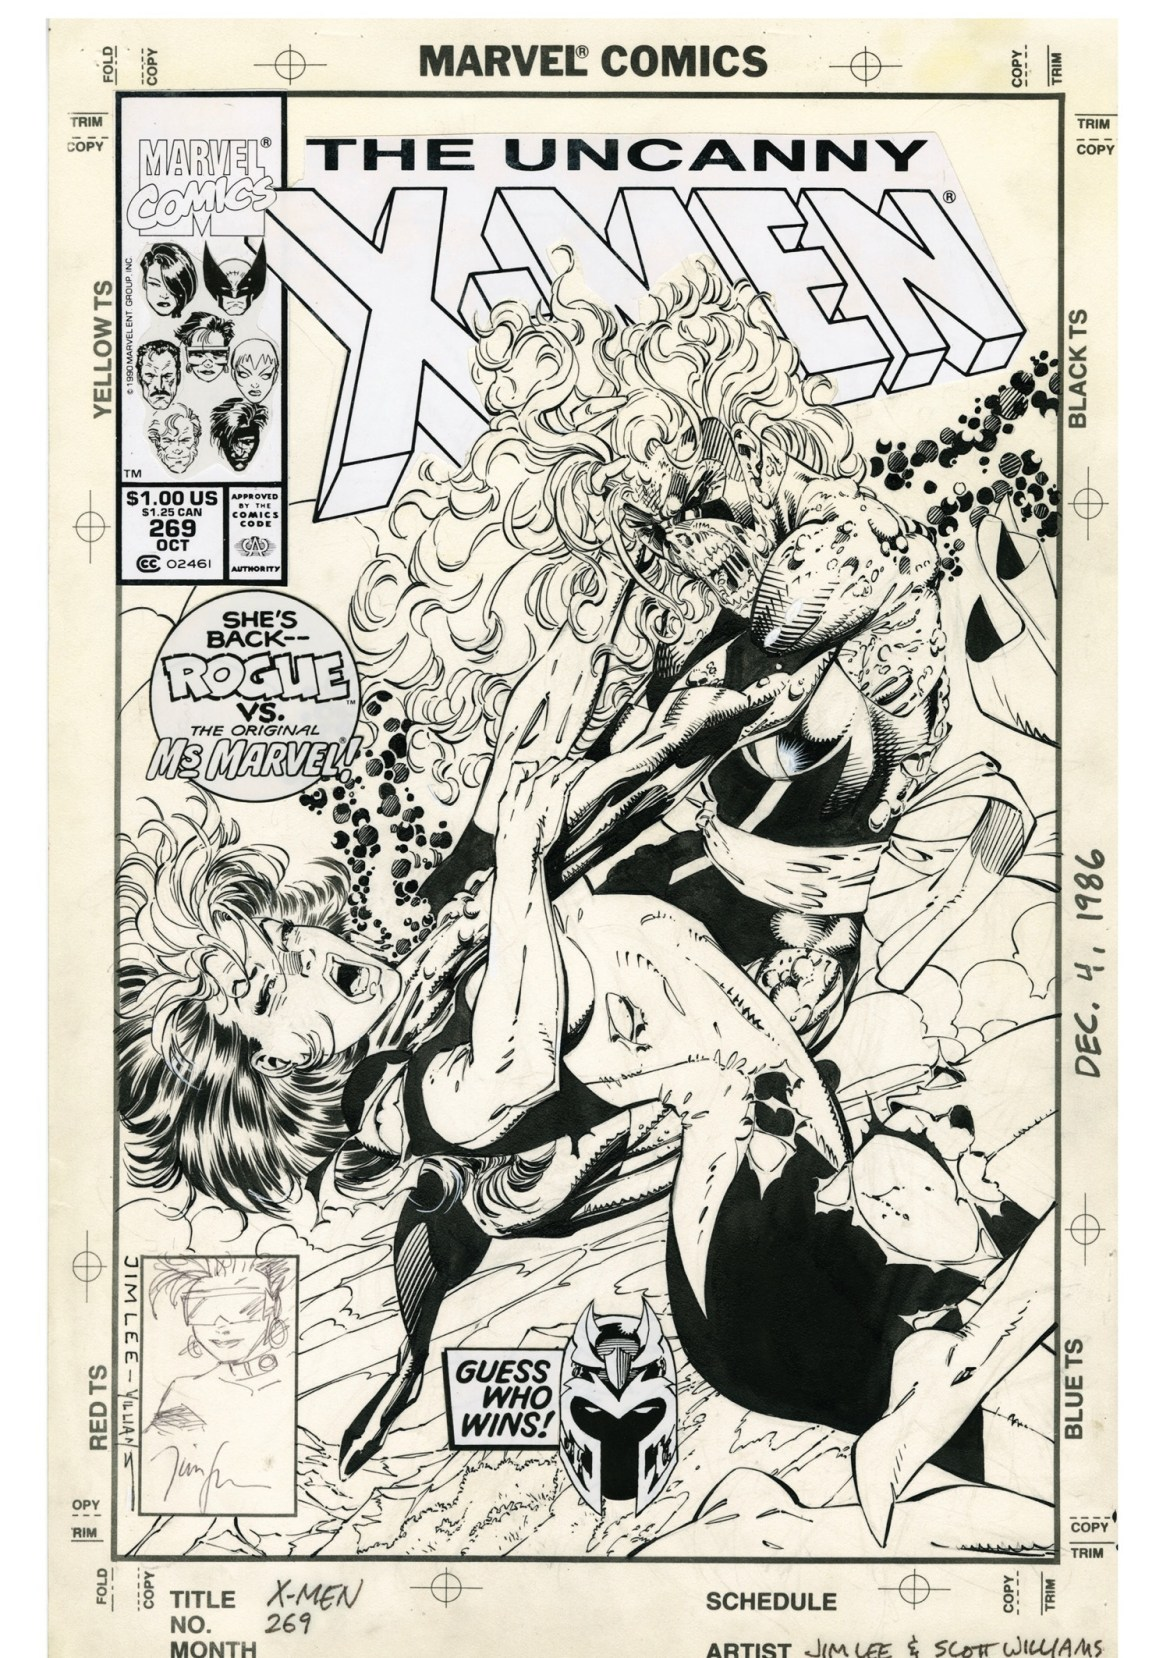 fe0ea9c6-fdf9-4761-941b-ea65eb535de4 JIM LEE'S X-MEN ARTIST'S EDITION to contain the best selling X-Men #1